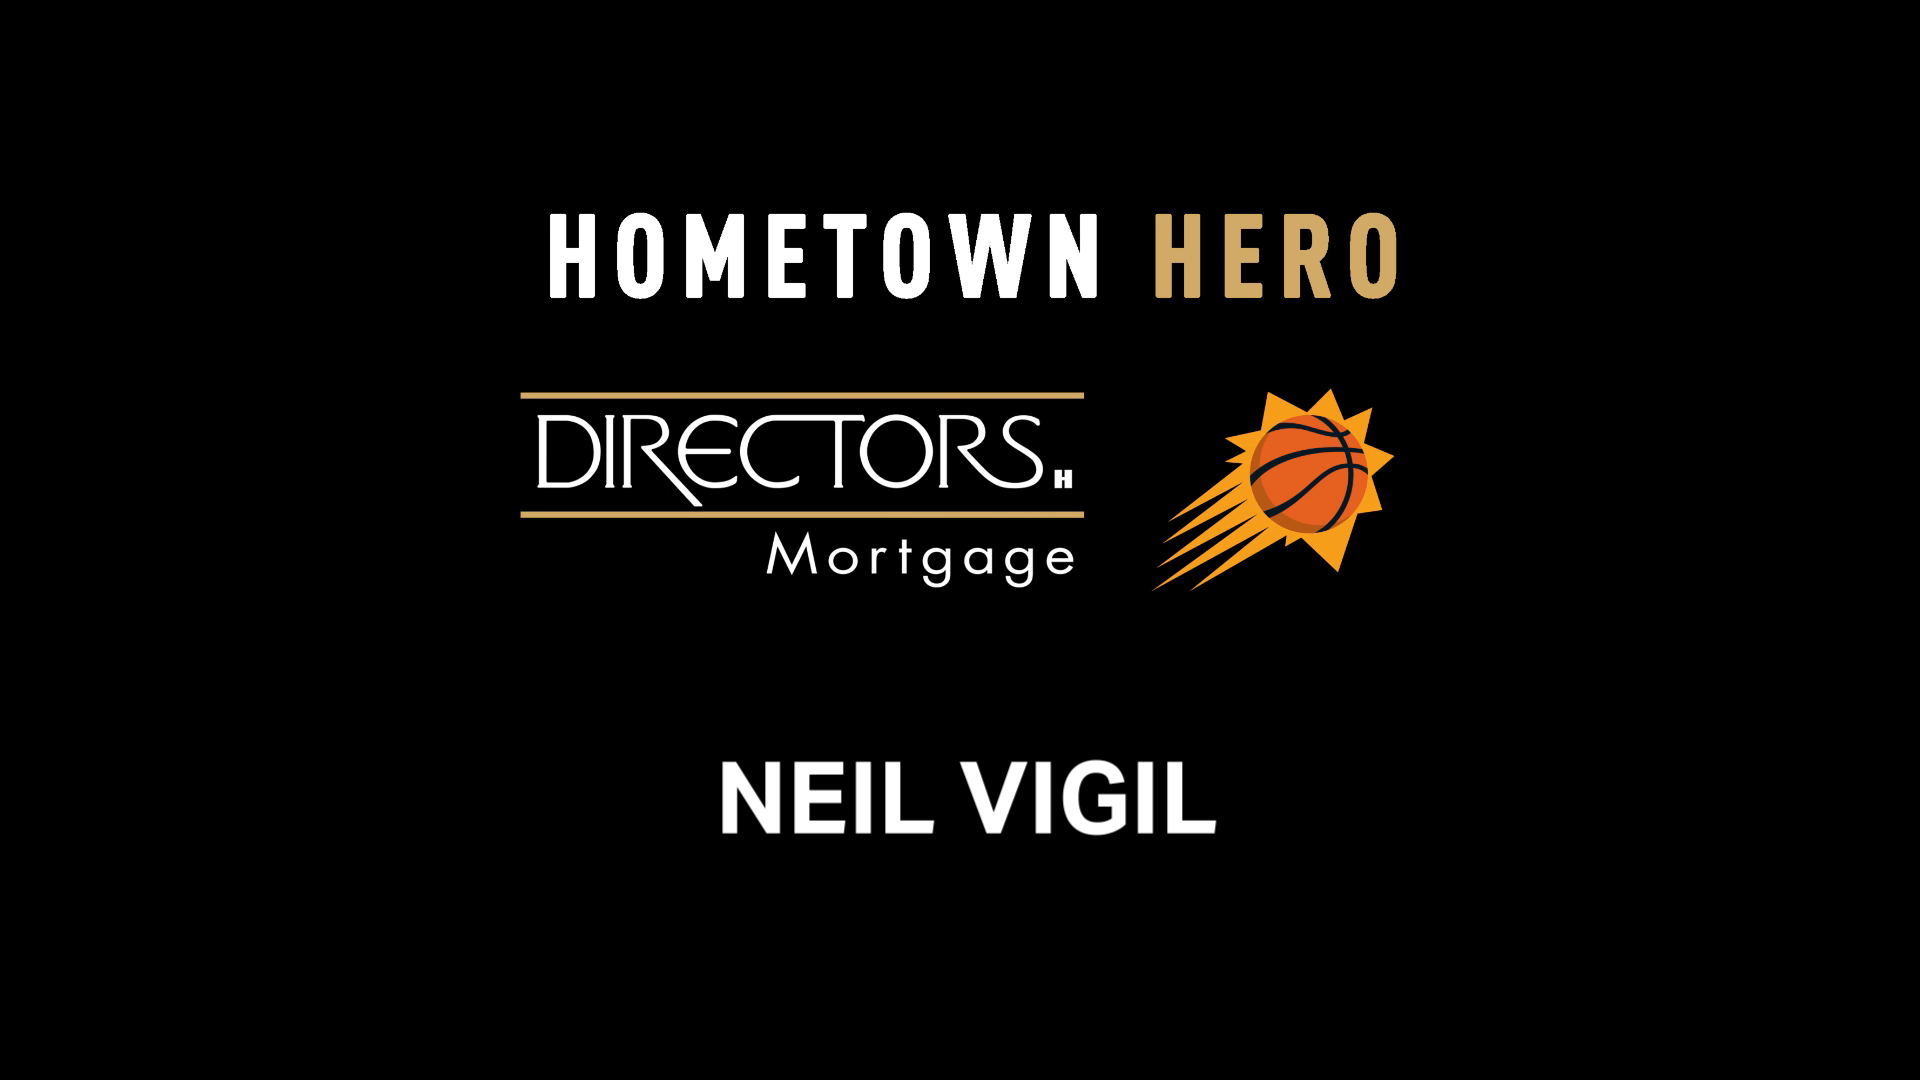 Neil Vigil | Directors Mortgage Hometown Hero Honoree 2020-21